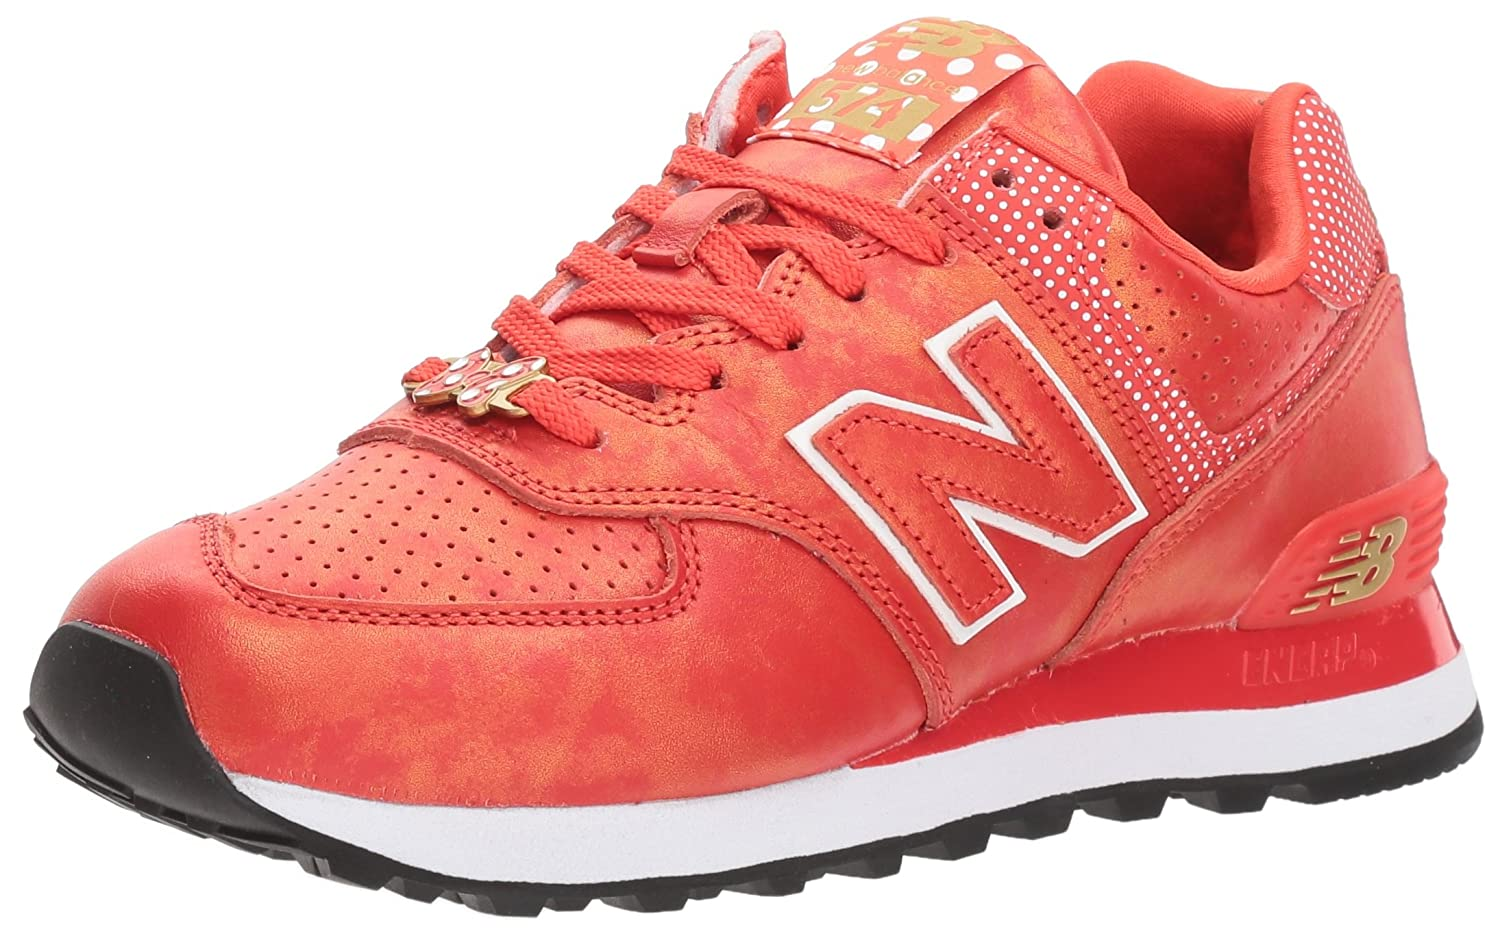 New Balance Women's Minnie Rocks The Dots Wl574v2 B0744NK1WK 6.5 B(M) US|Red